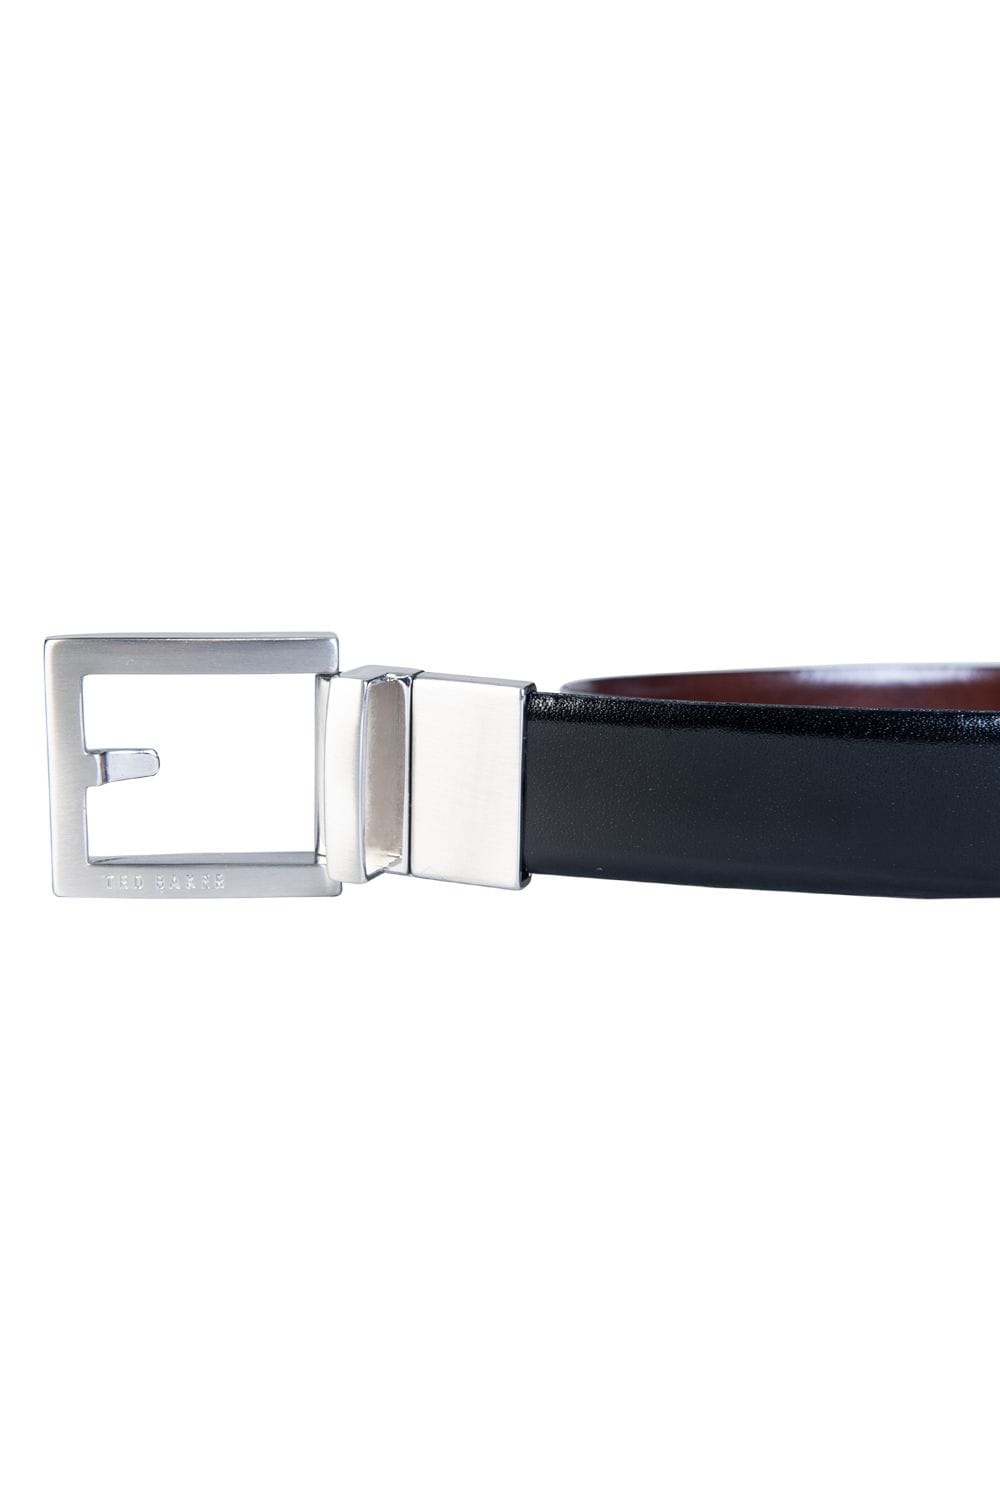 e9d05dad2e22 Ted Baker Belt Reversible X00M-XH70-BROSNEN - Accessories from Sage ...